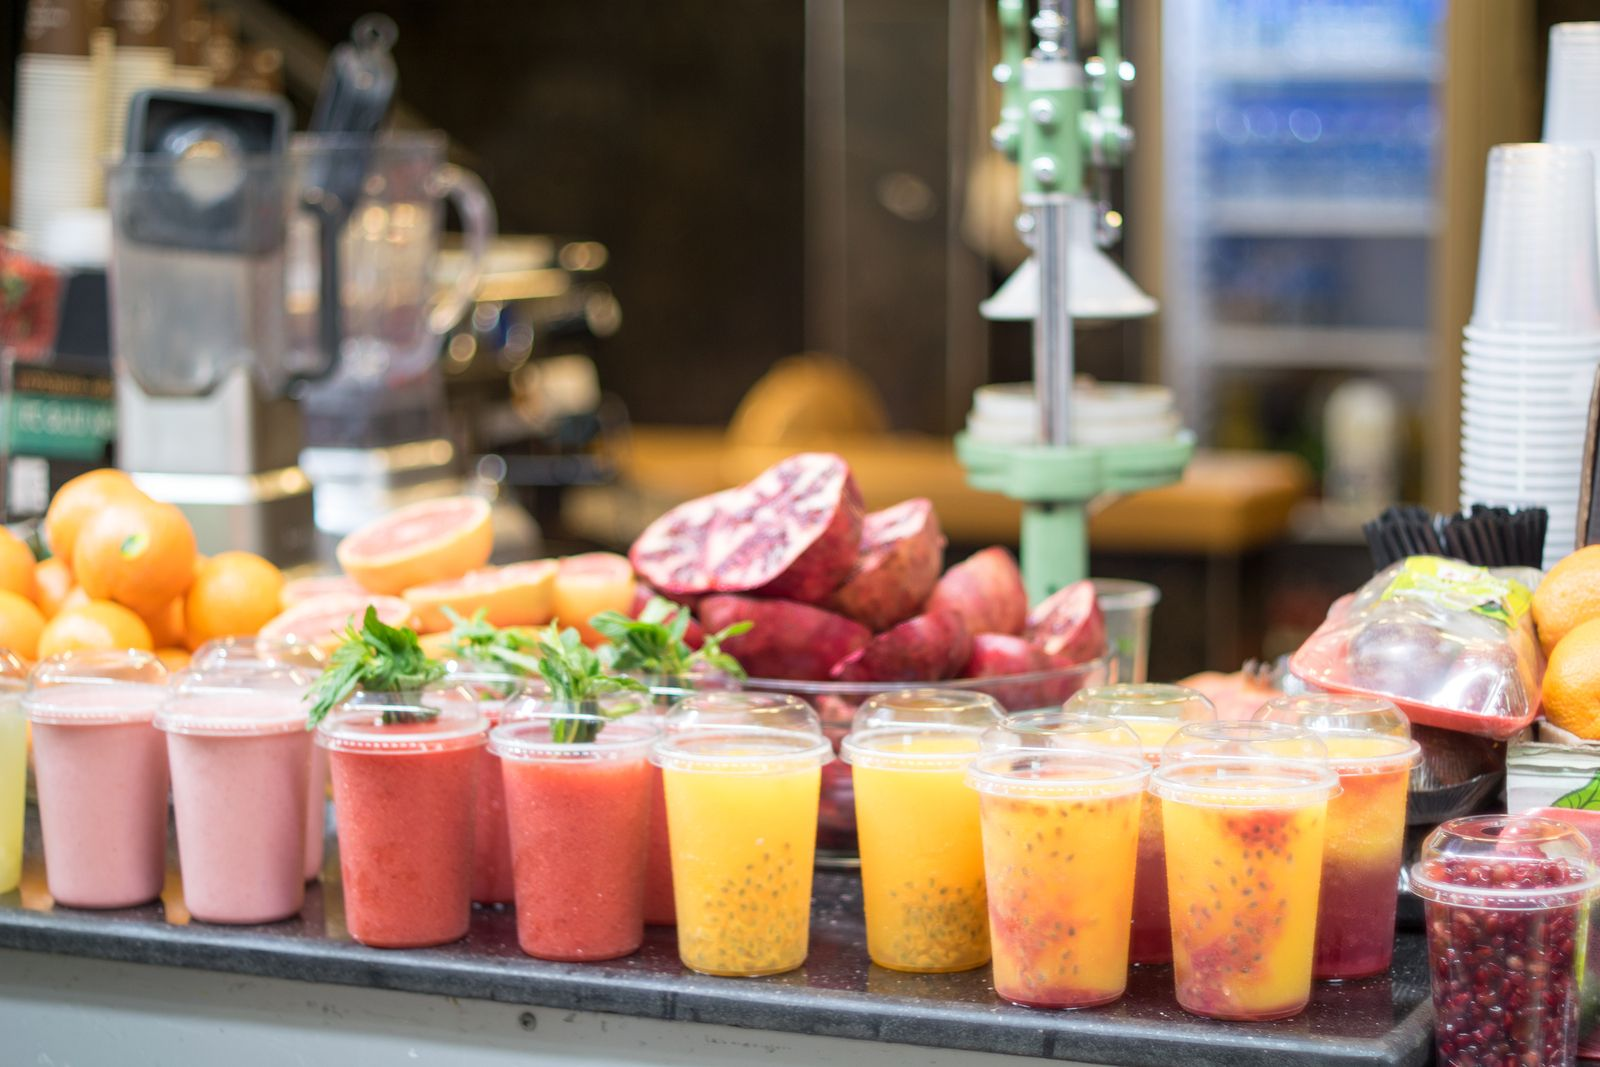 Top Juice outlets audited for compliance | Inside Franchise Business